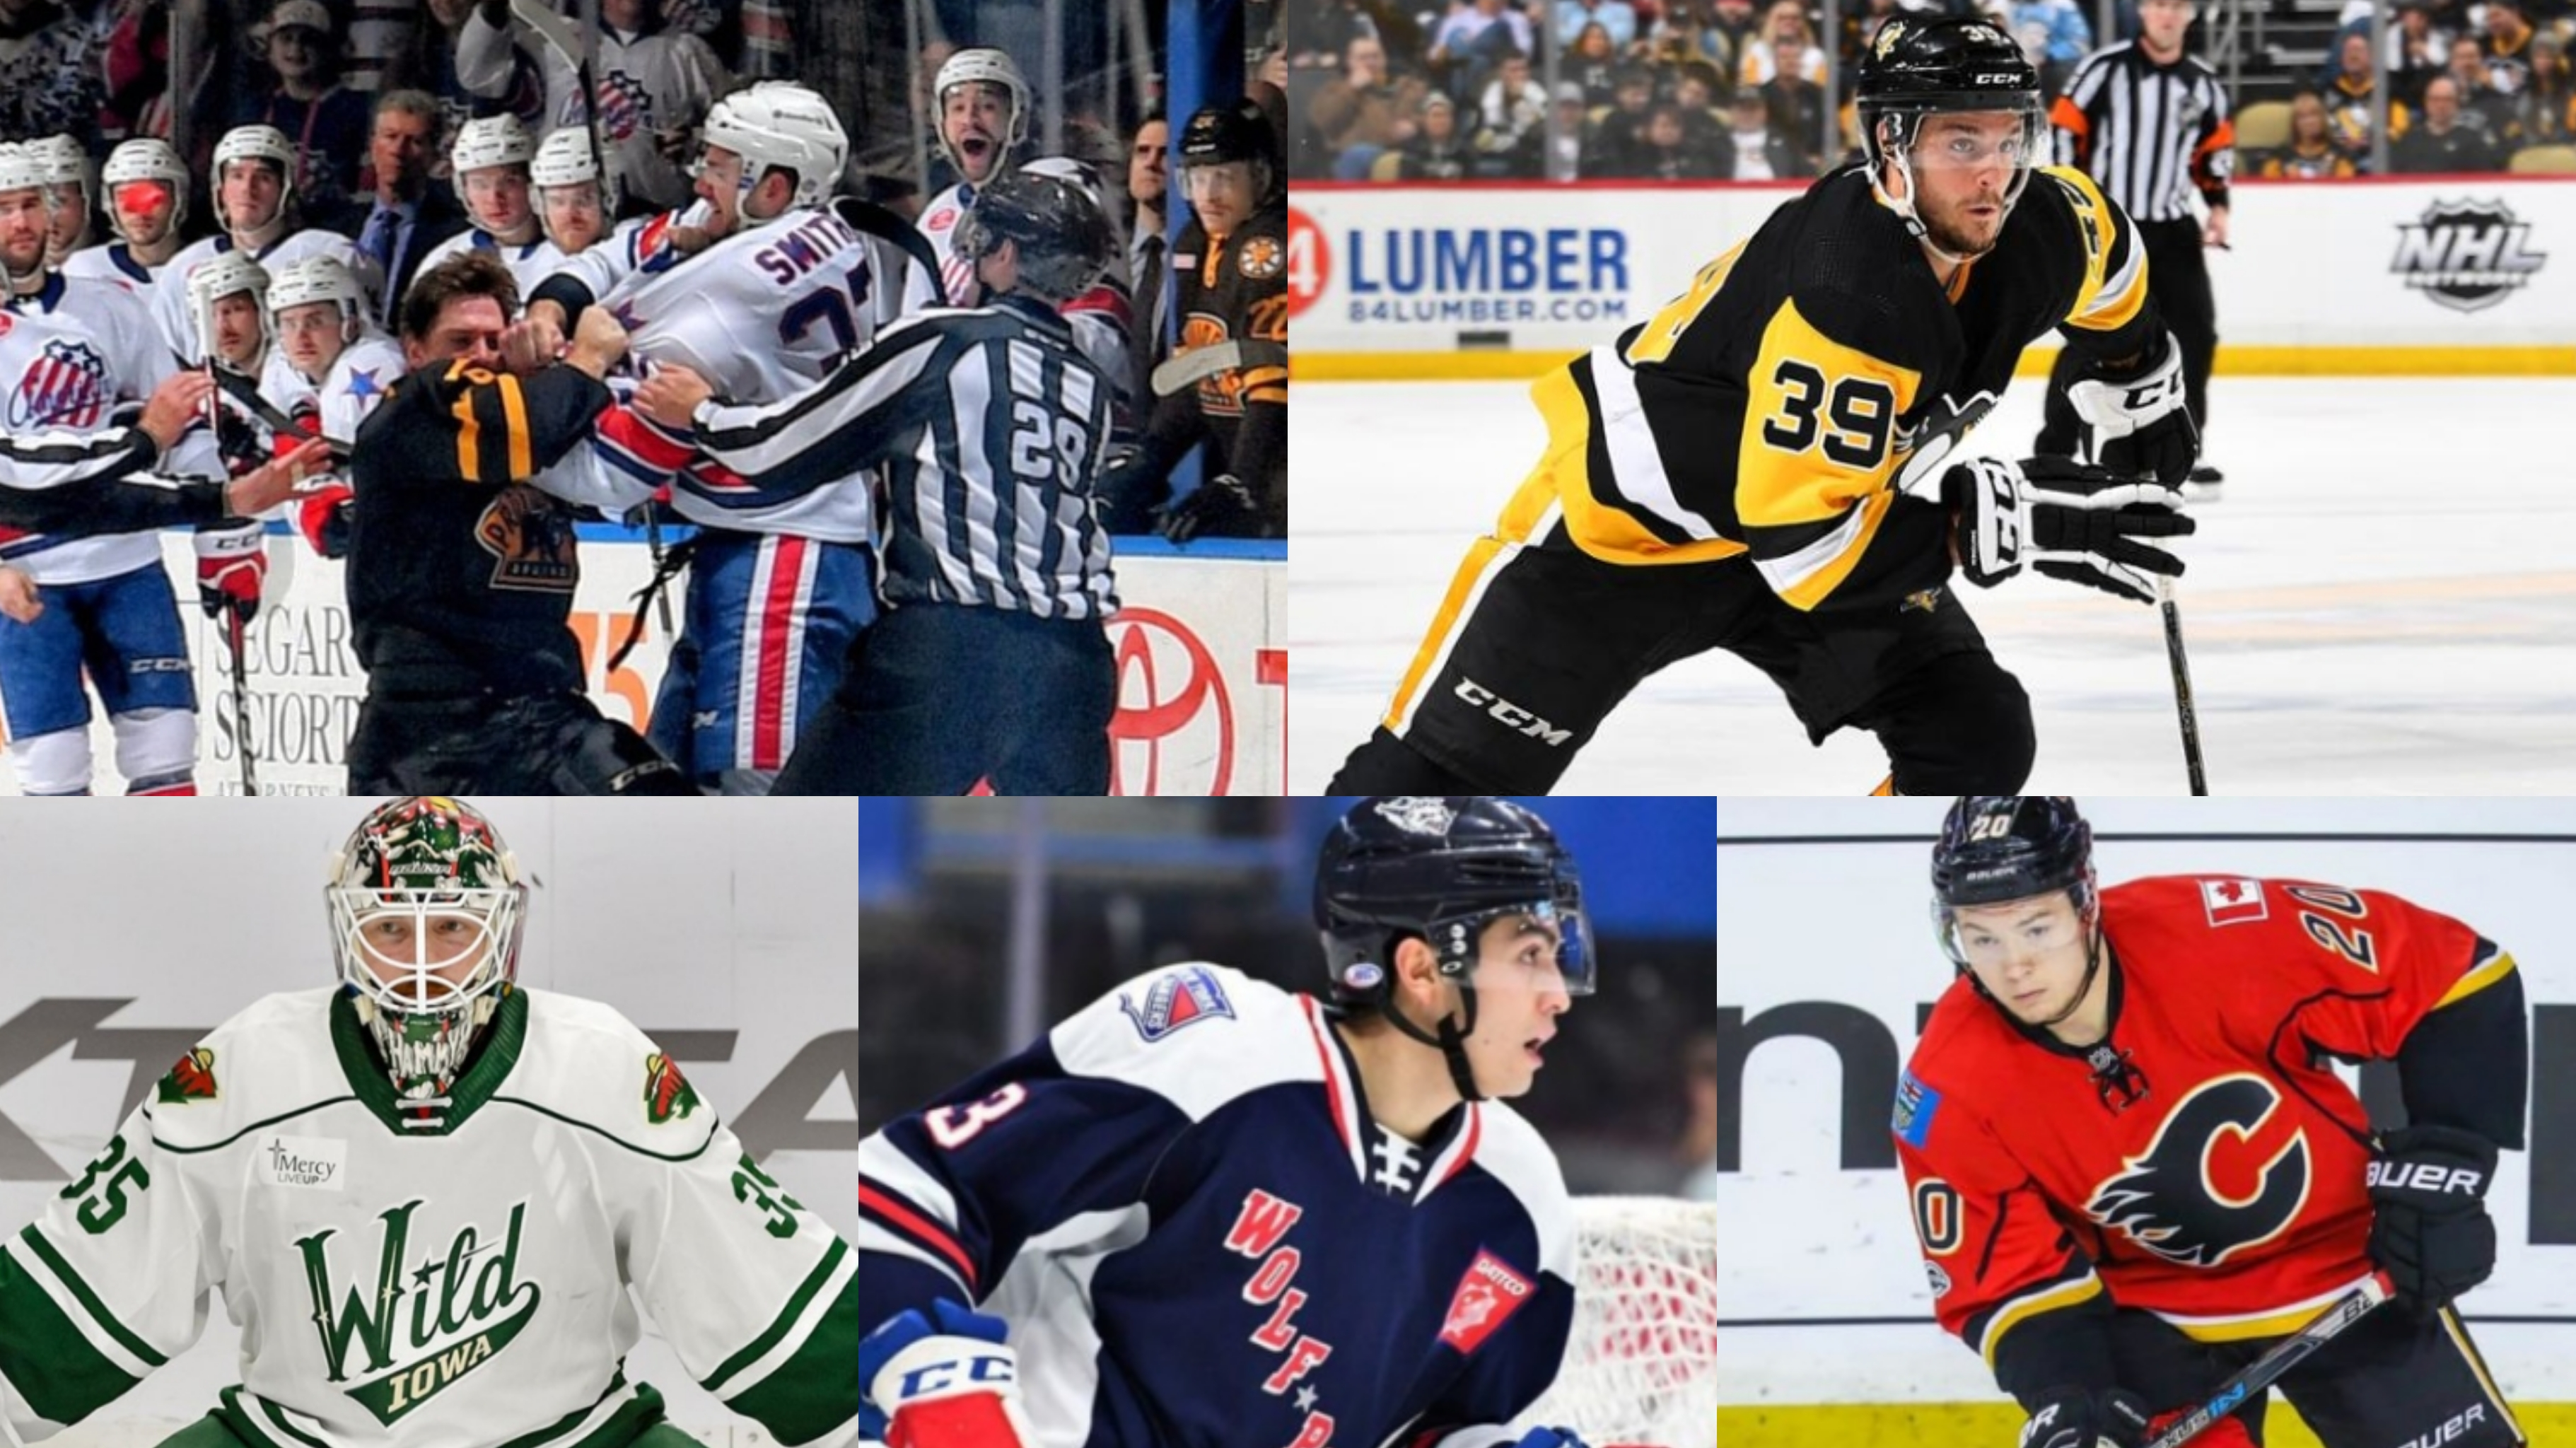 Amerks are Winners at the Start of Free Agency